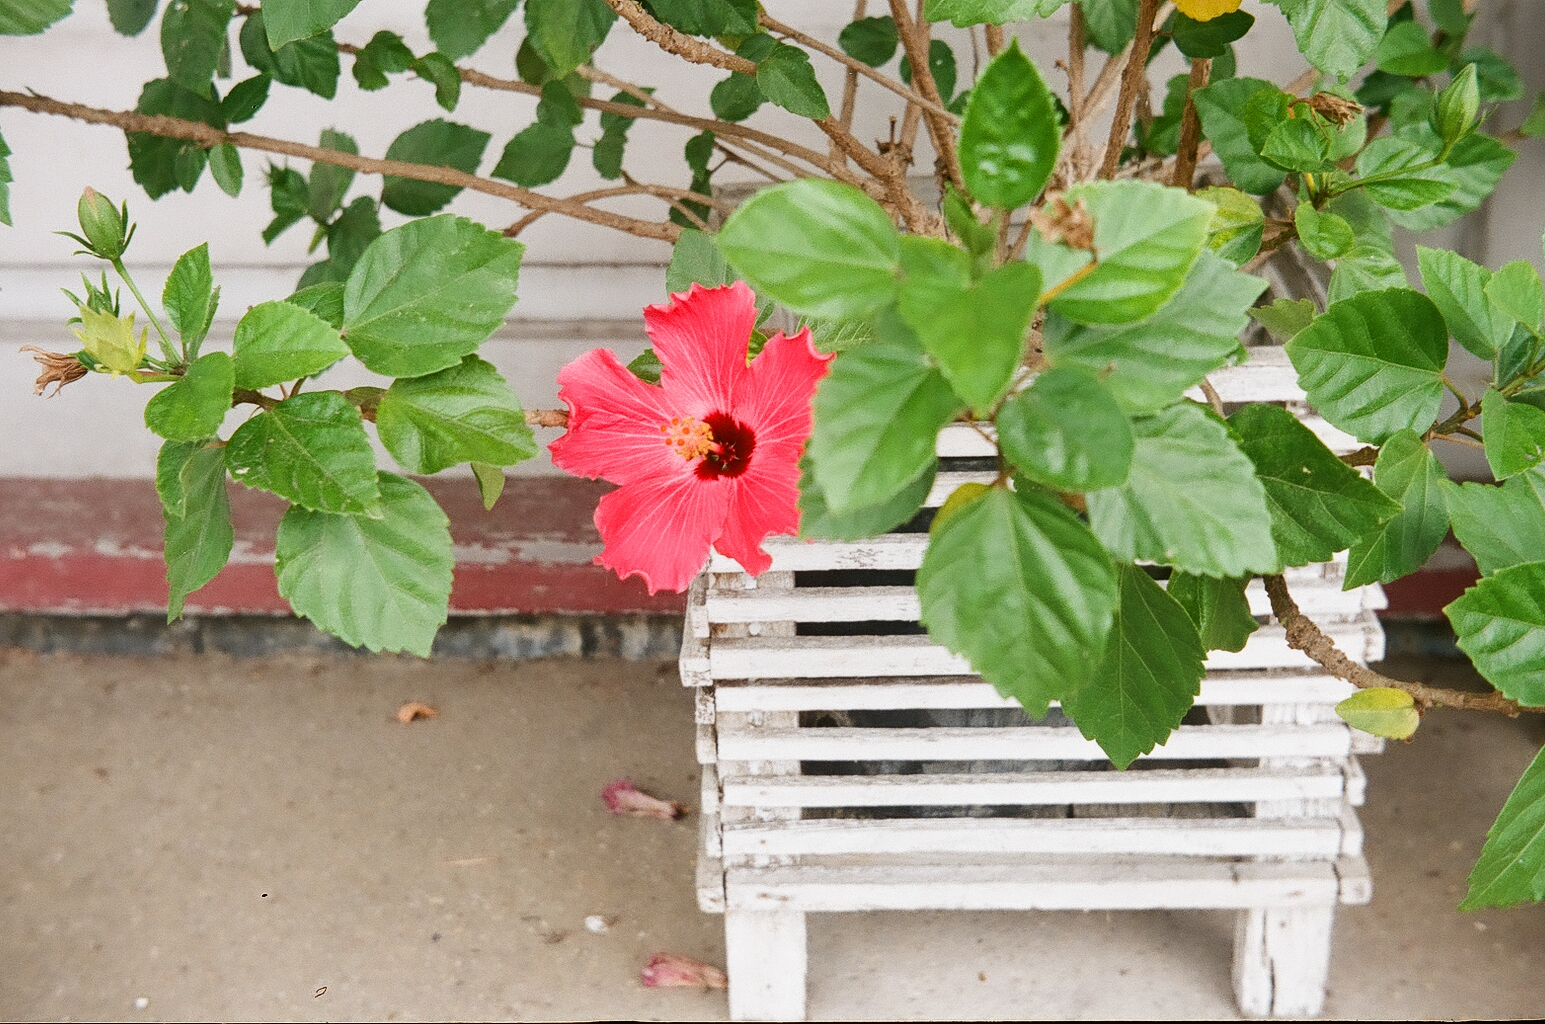 A bright red flower in a white stand and the greenery all around